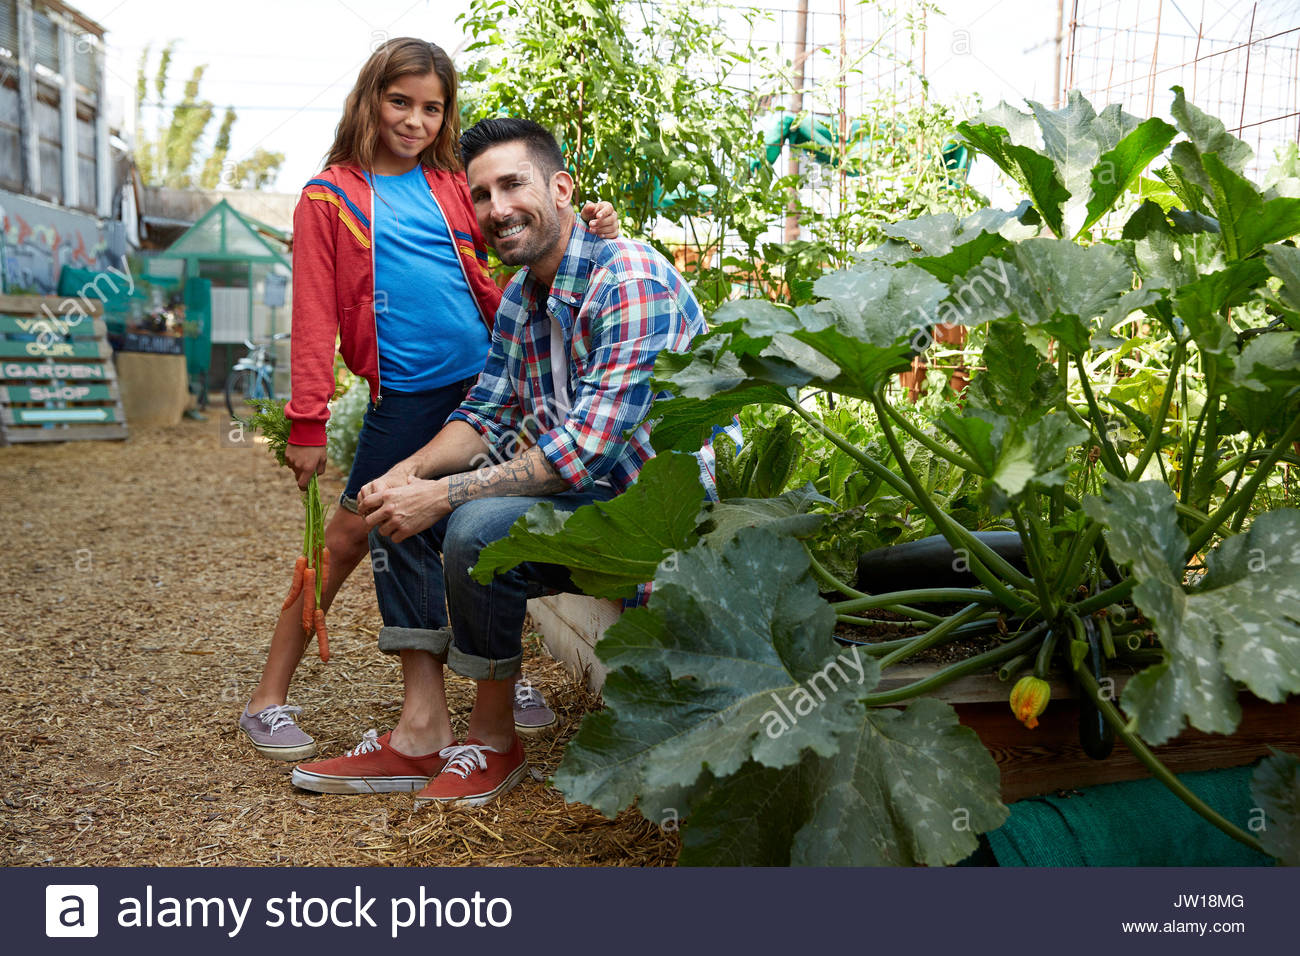 Portrait smiling father and daughter in garden - Stock Image